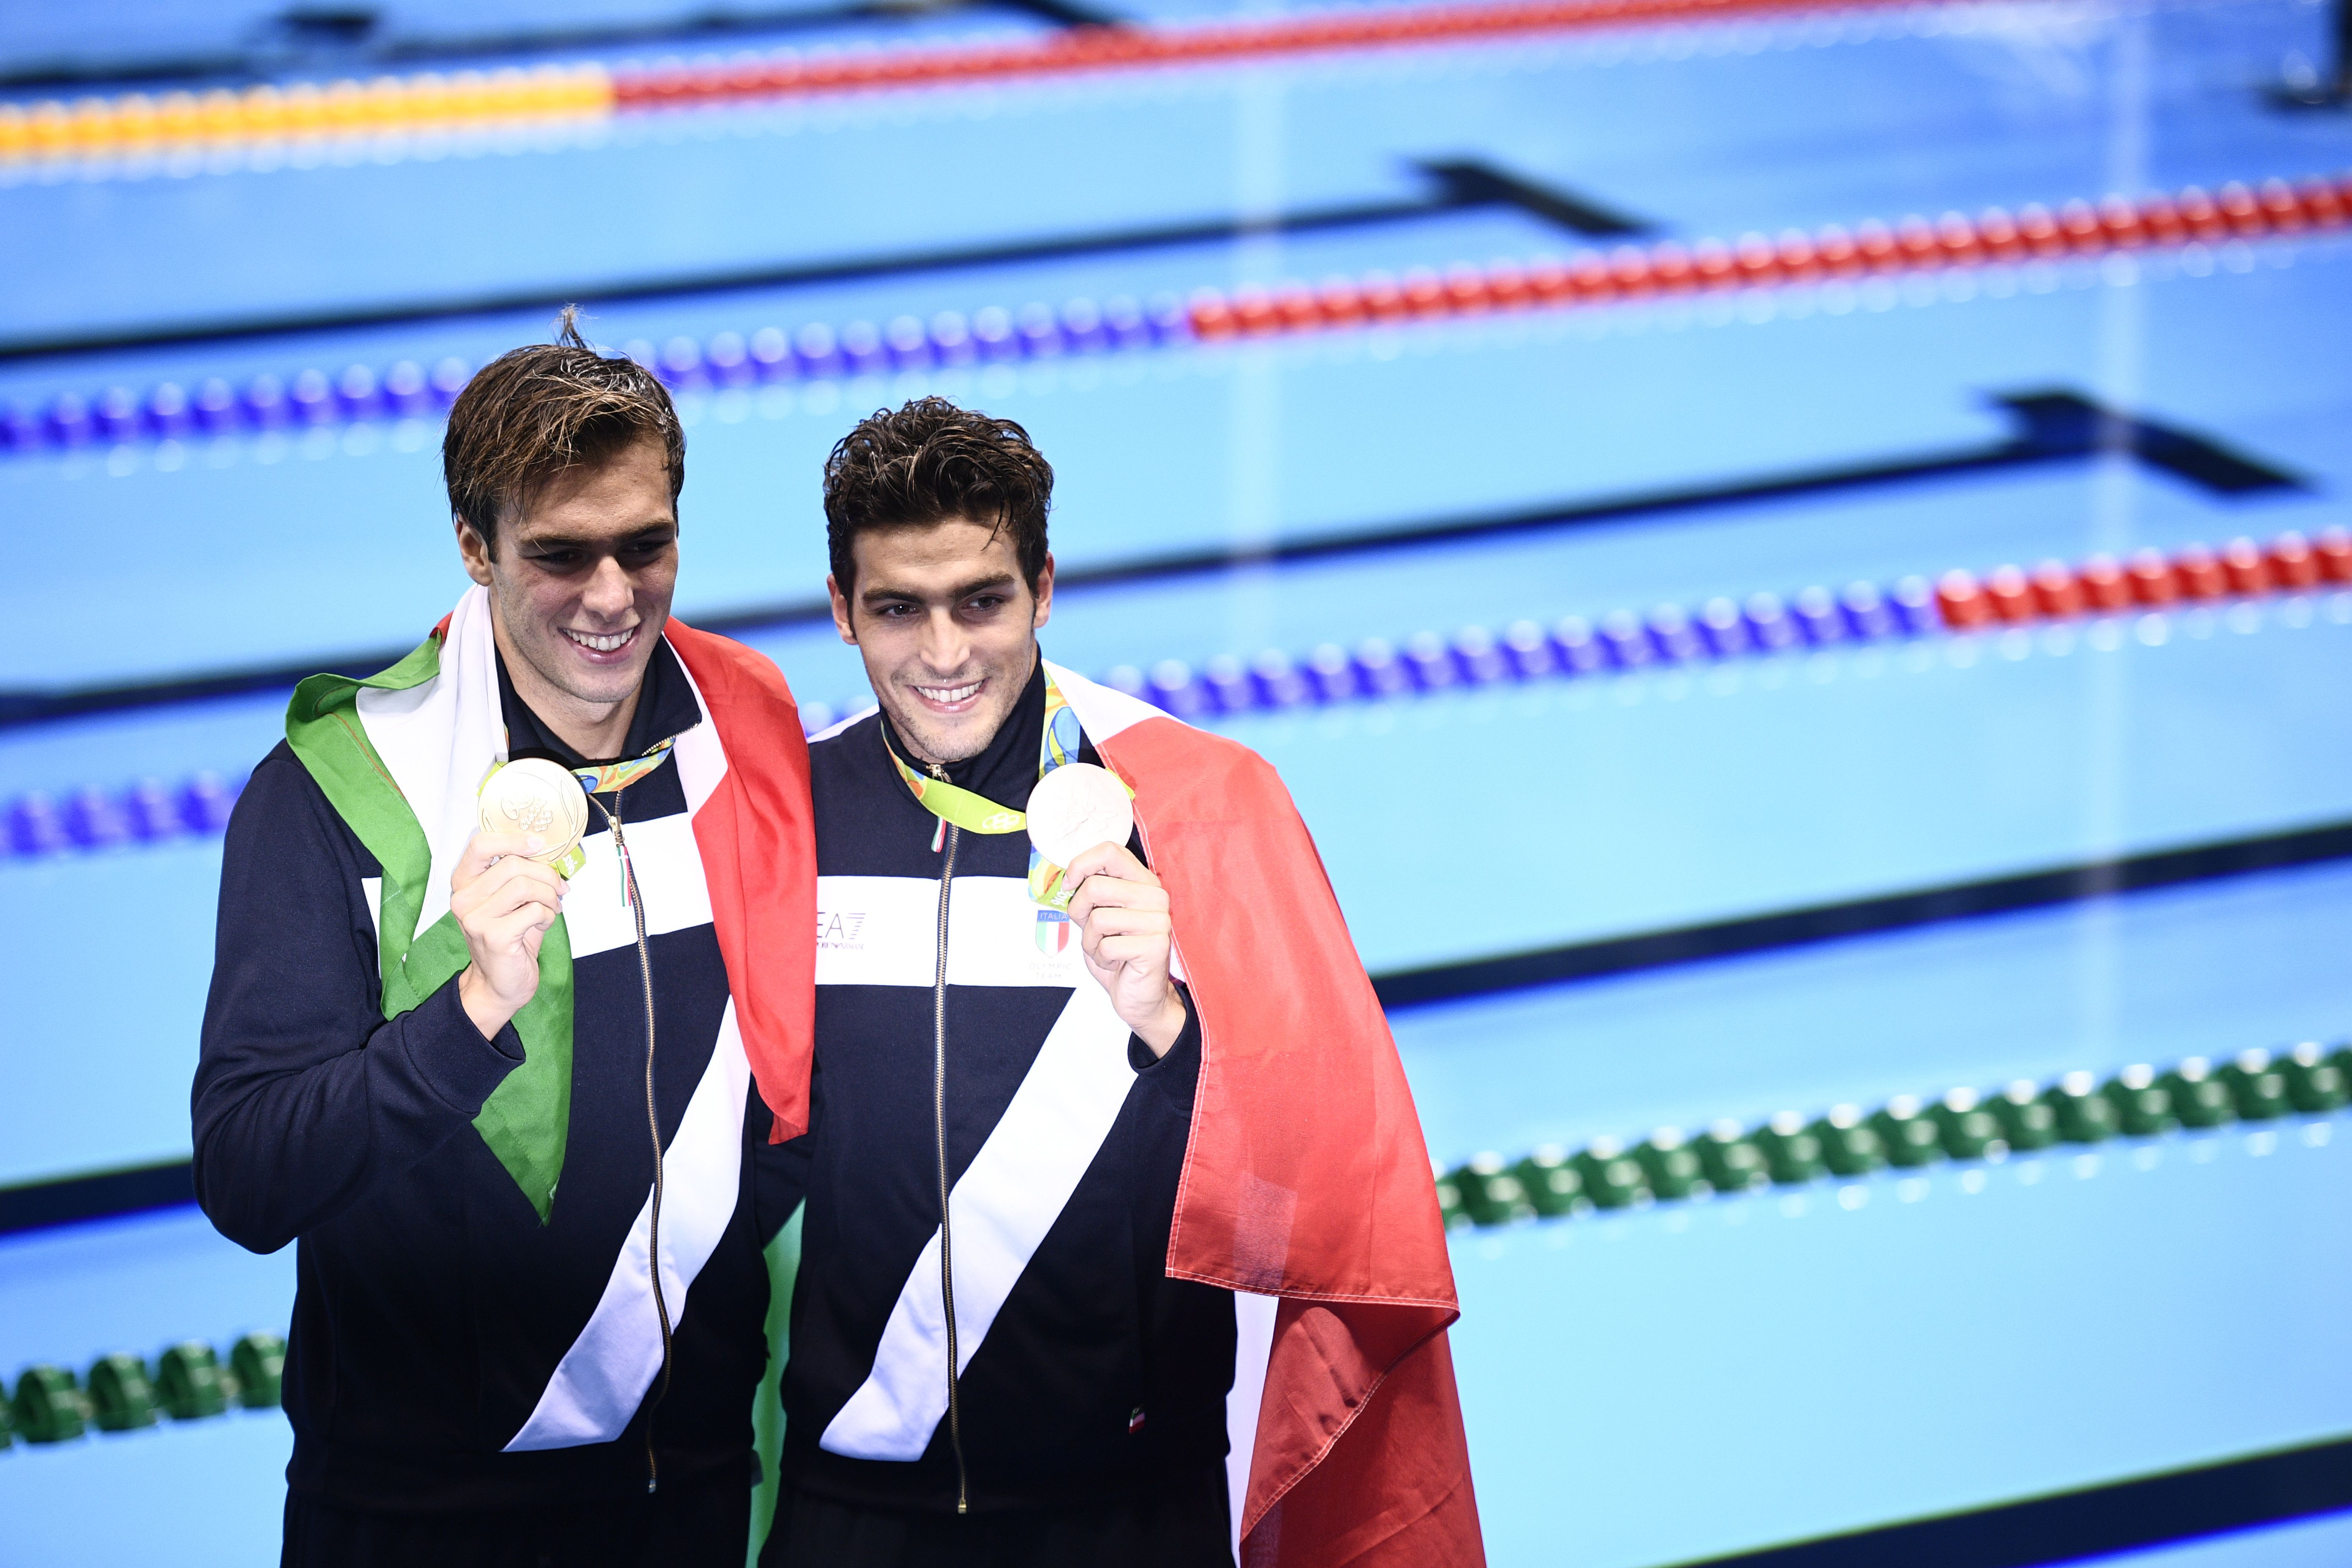 Italy's gold medallist Gregorio Paltrinieri and Italy's bronze Gabriele Detti (R) pose on the podium after the Men's swimming 1500m Freestyle Final at the Rio 2016 Olympic Games at the Olympic Aquatics Stadium in Rio de Janeiro on August 13, 2016. / AFP / Martin BUREAU (Photo credit should read MARTIN BUREAU/AFP/Getty Images)